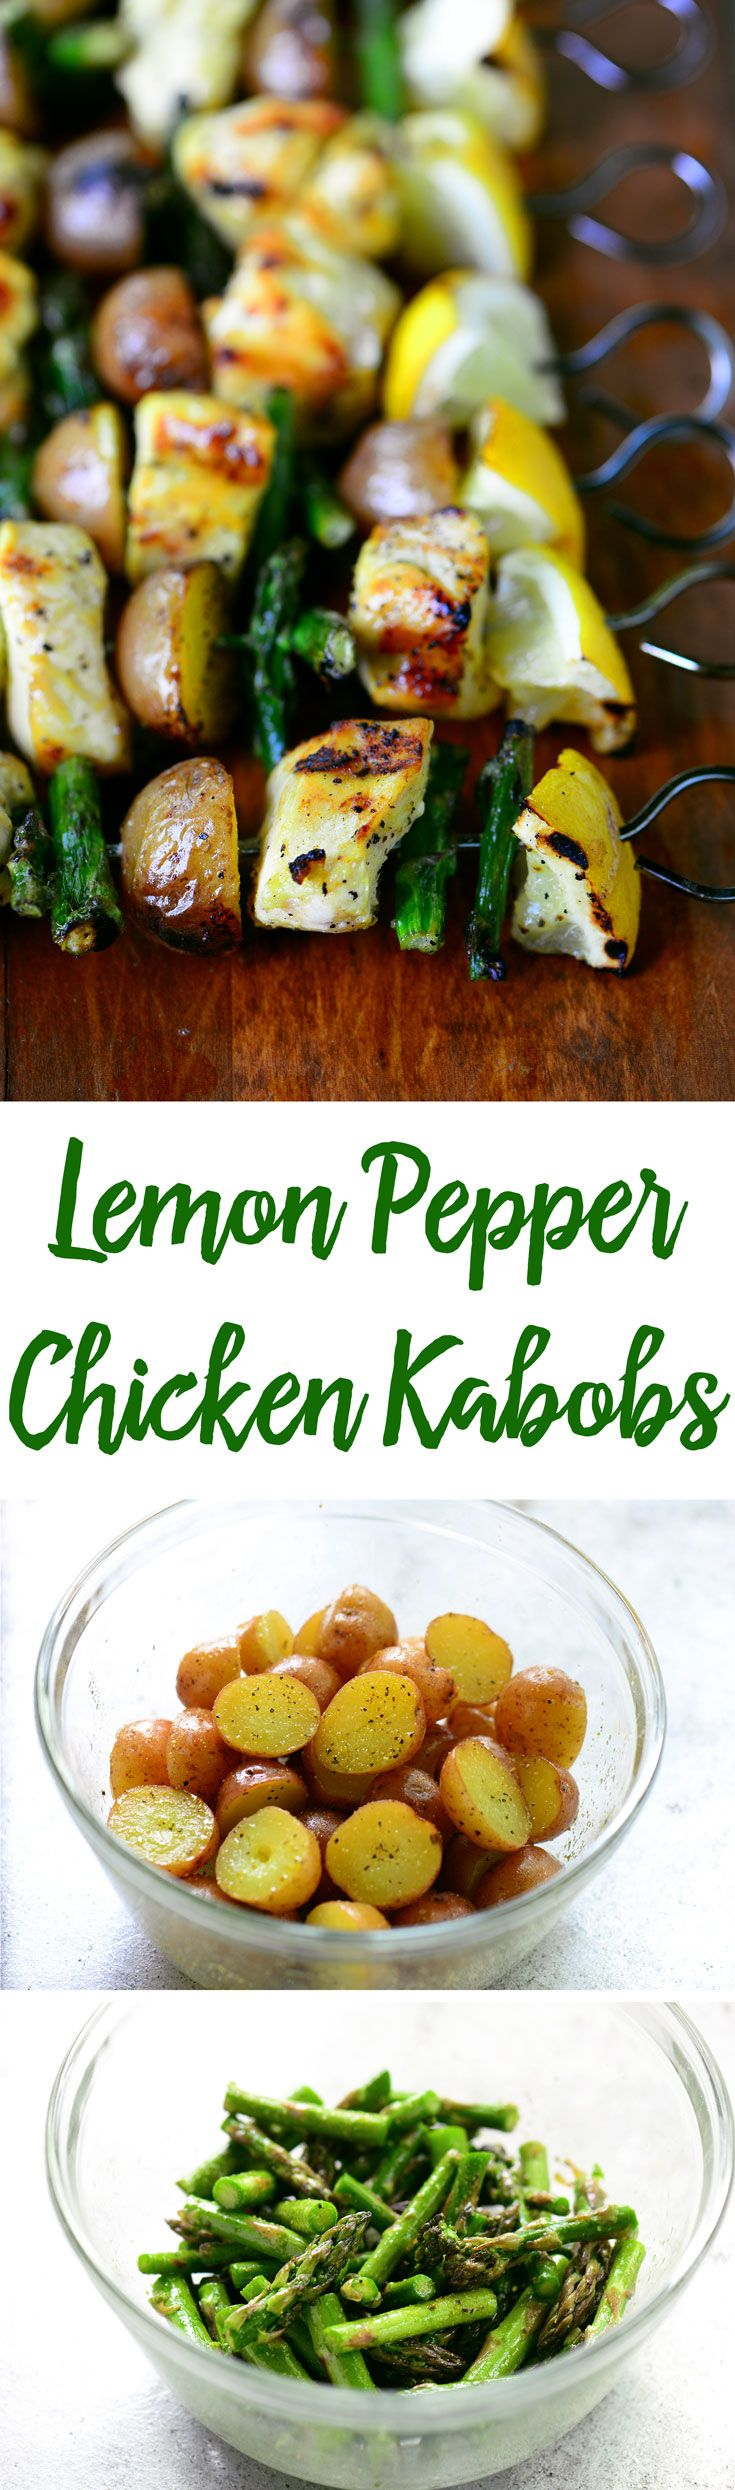 This grilled Lemon Pepper Chicken Kabobs recipe with asparagus and potatoes has juicy, tender chicken that is full of flavor and will be a family favorite!